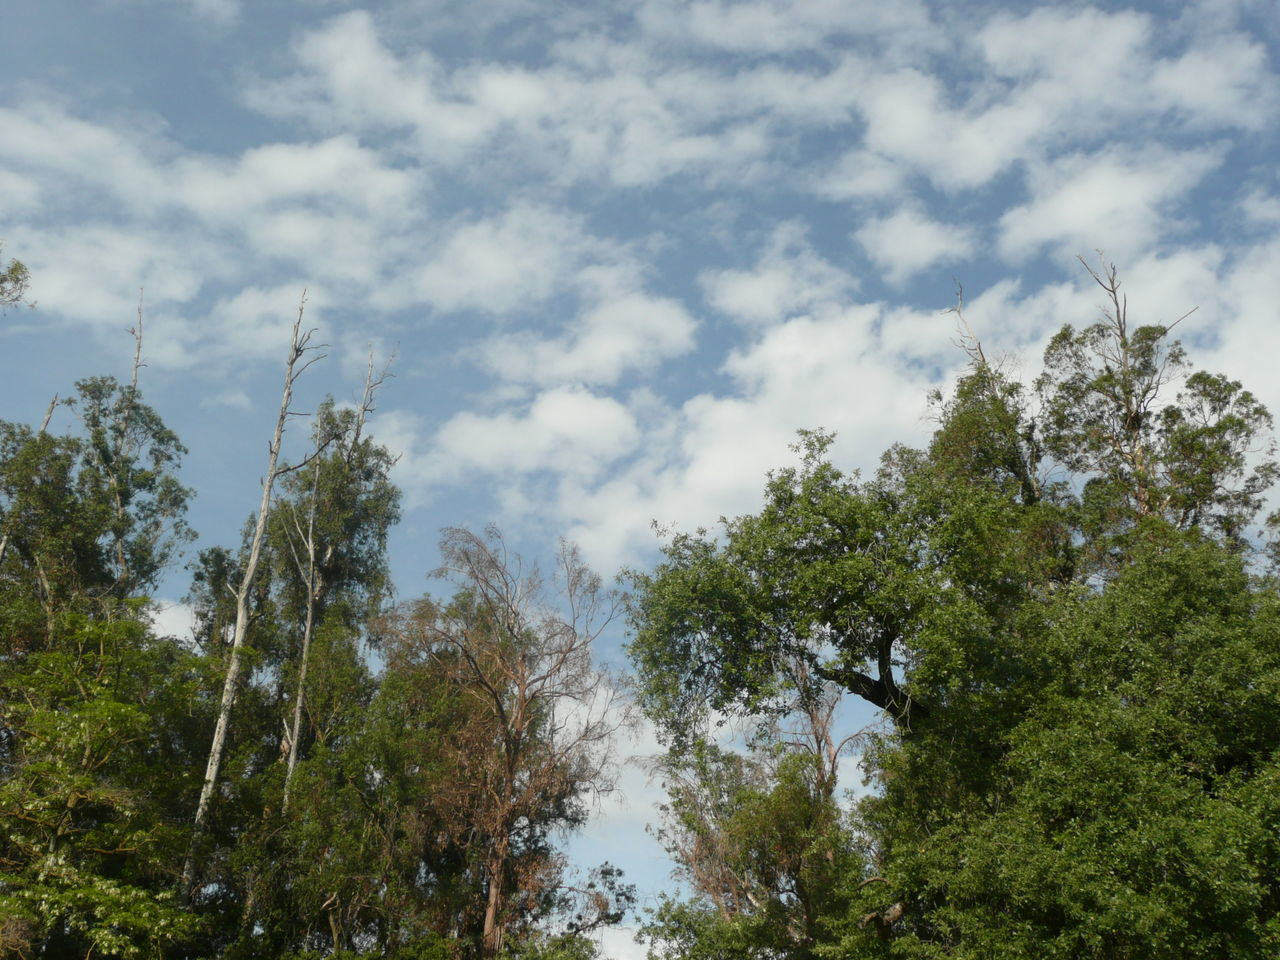 trees by Guadalupe River in San Jose Beauty In Nature Blue Sky Clouds Clouds And Sky Day Environment Eucalyptus Trees Forest Growth High Low Angle View Native Plants Nature No People Outdoors Park San Jose California Scenery Sky The Great Outdoors - 2017 EyeEm Awards Travel Photography Tree Vegetation Weather Weather Photography